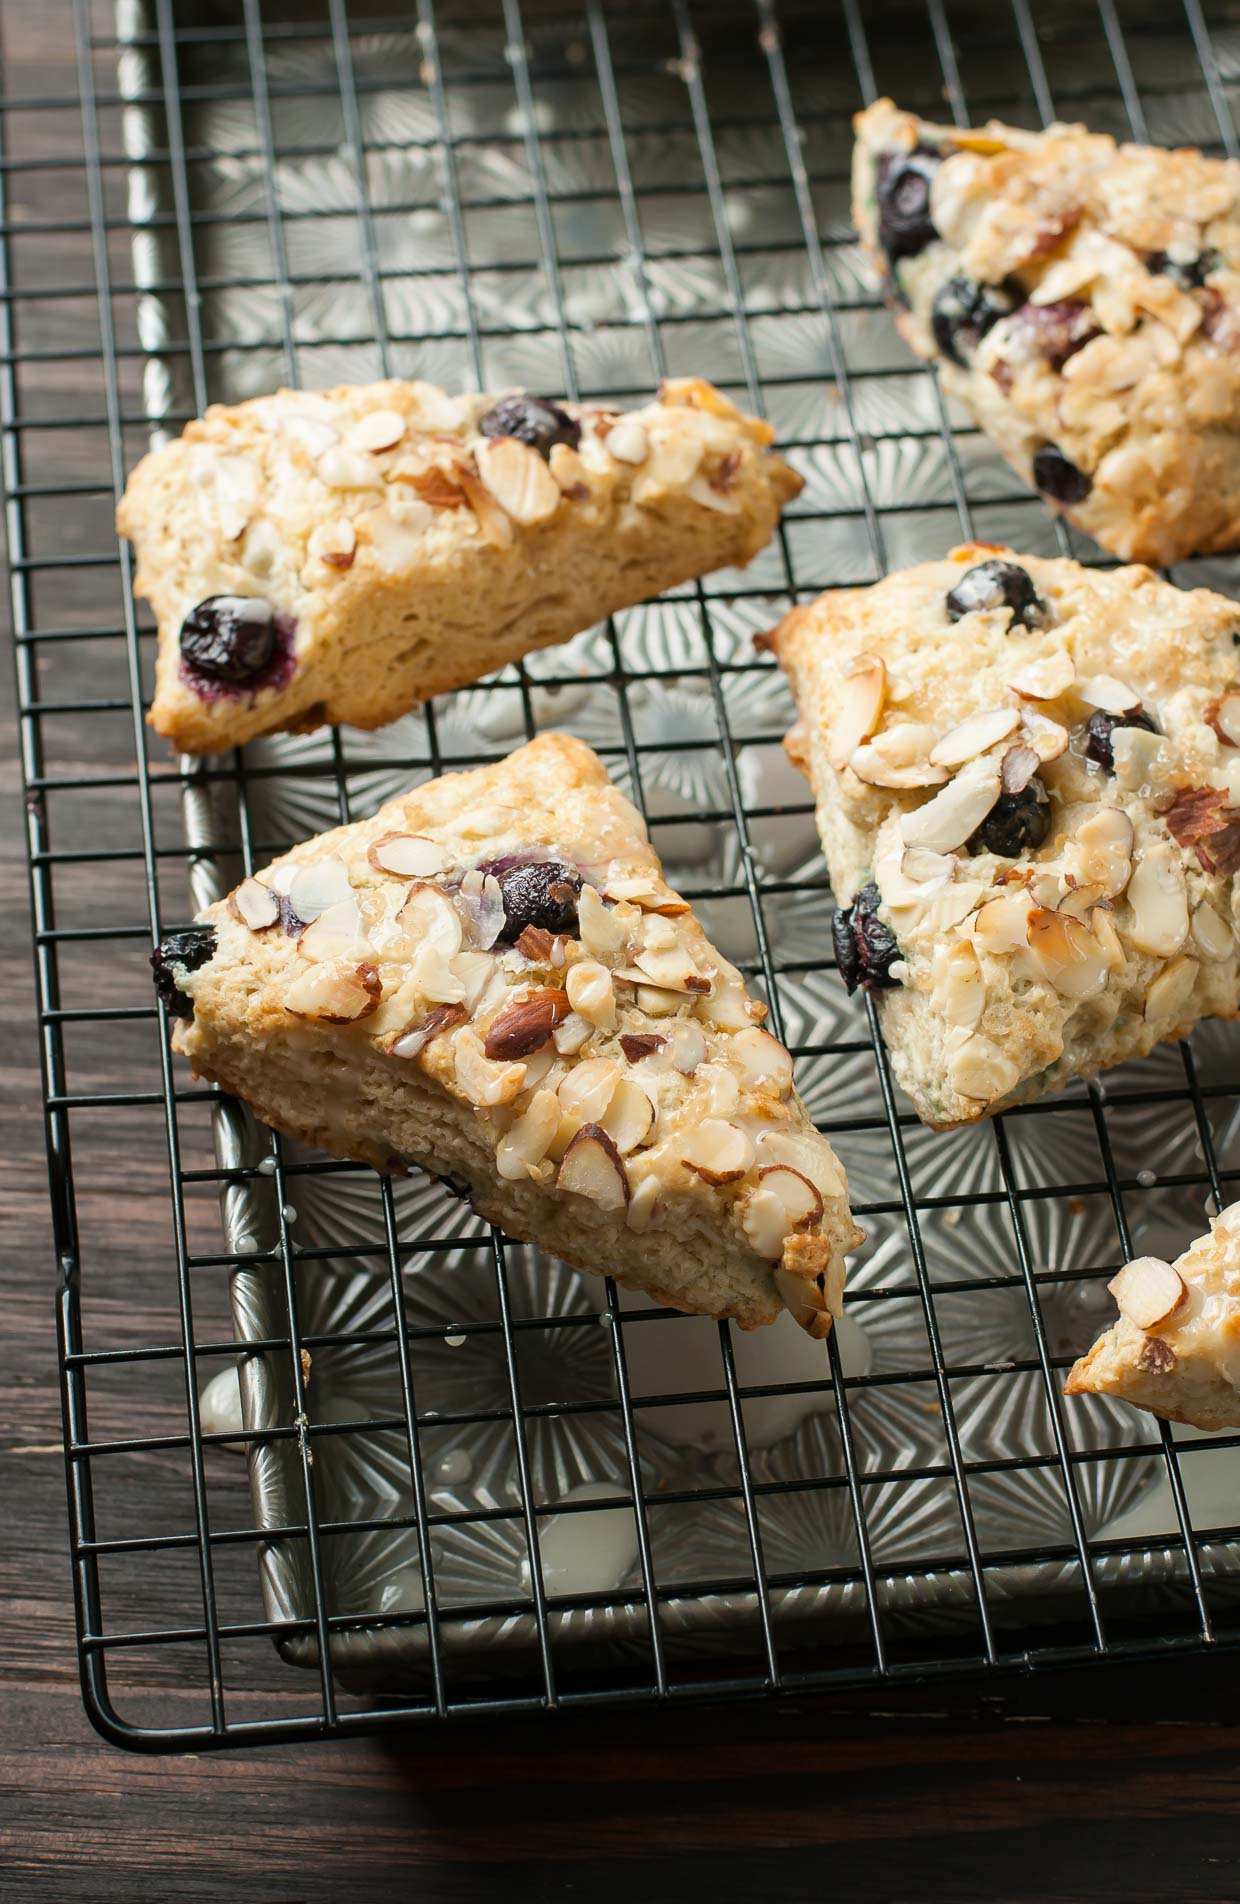 ... Bakery-Style Almond Blueberry Scones - lightened up with almond milk